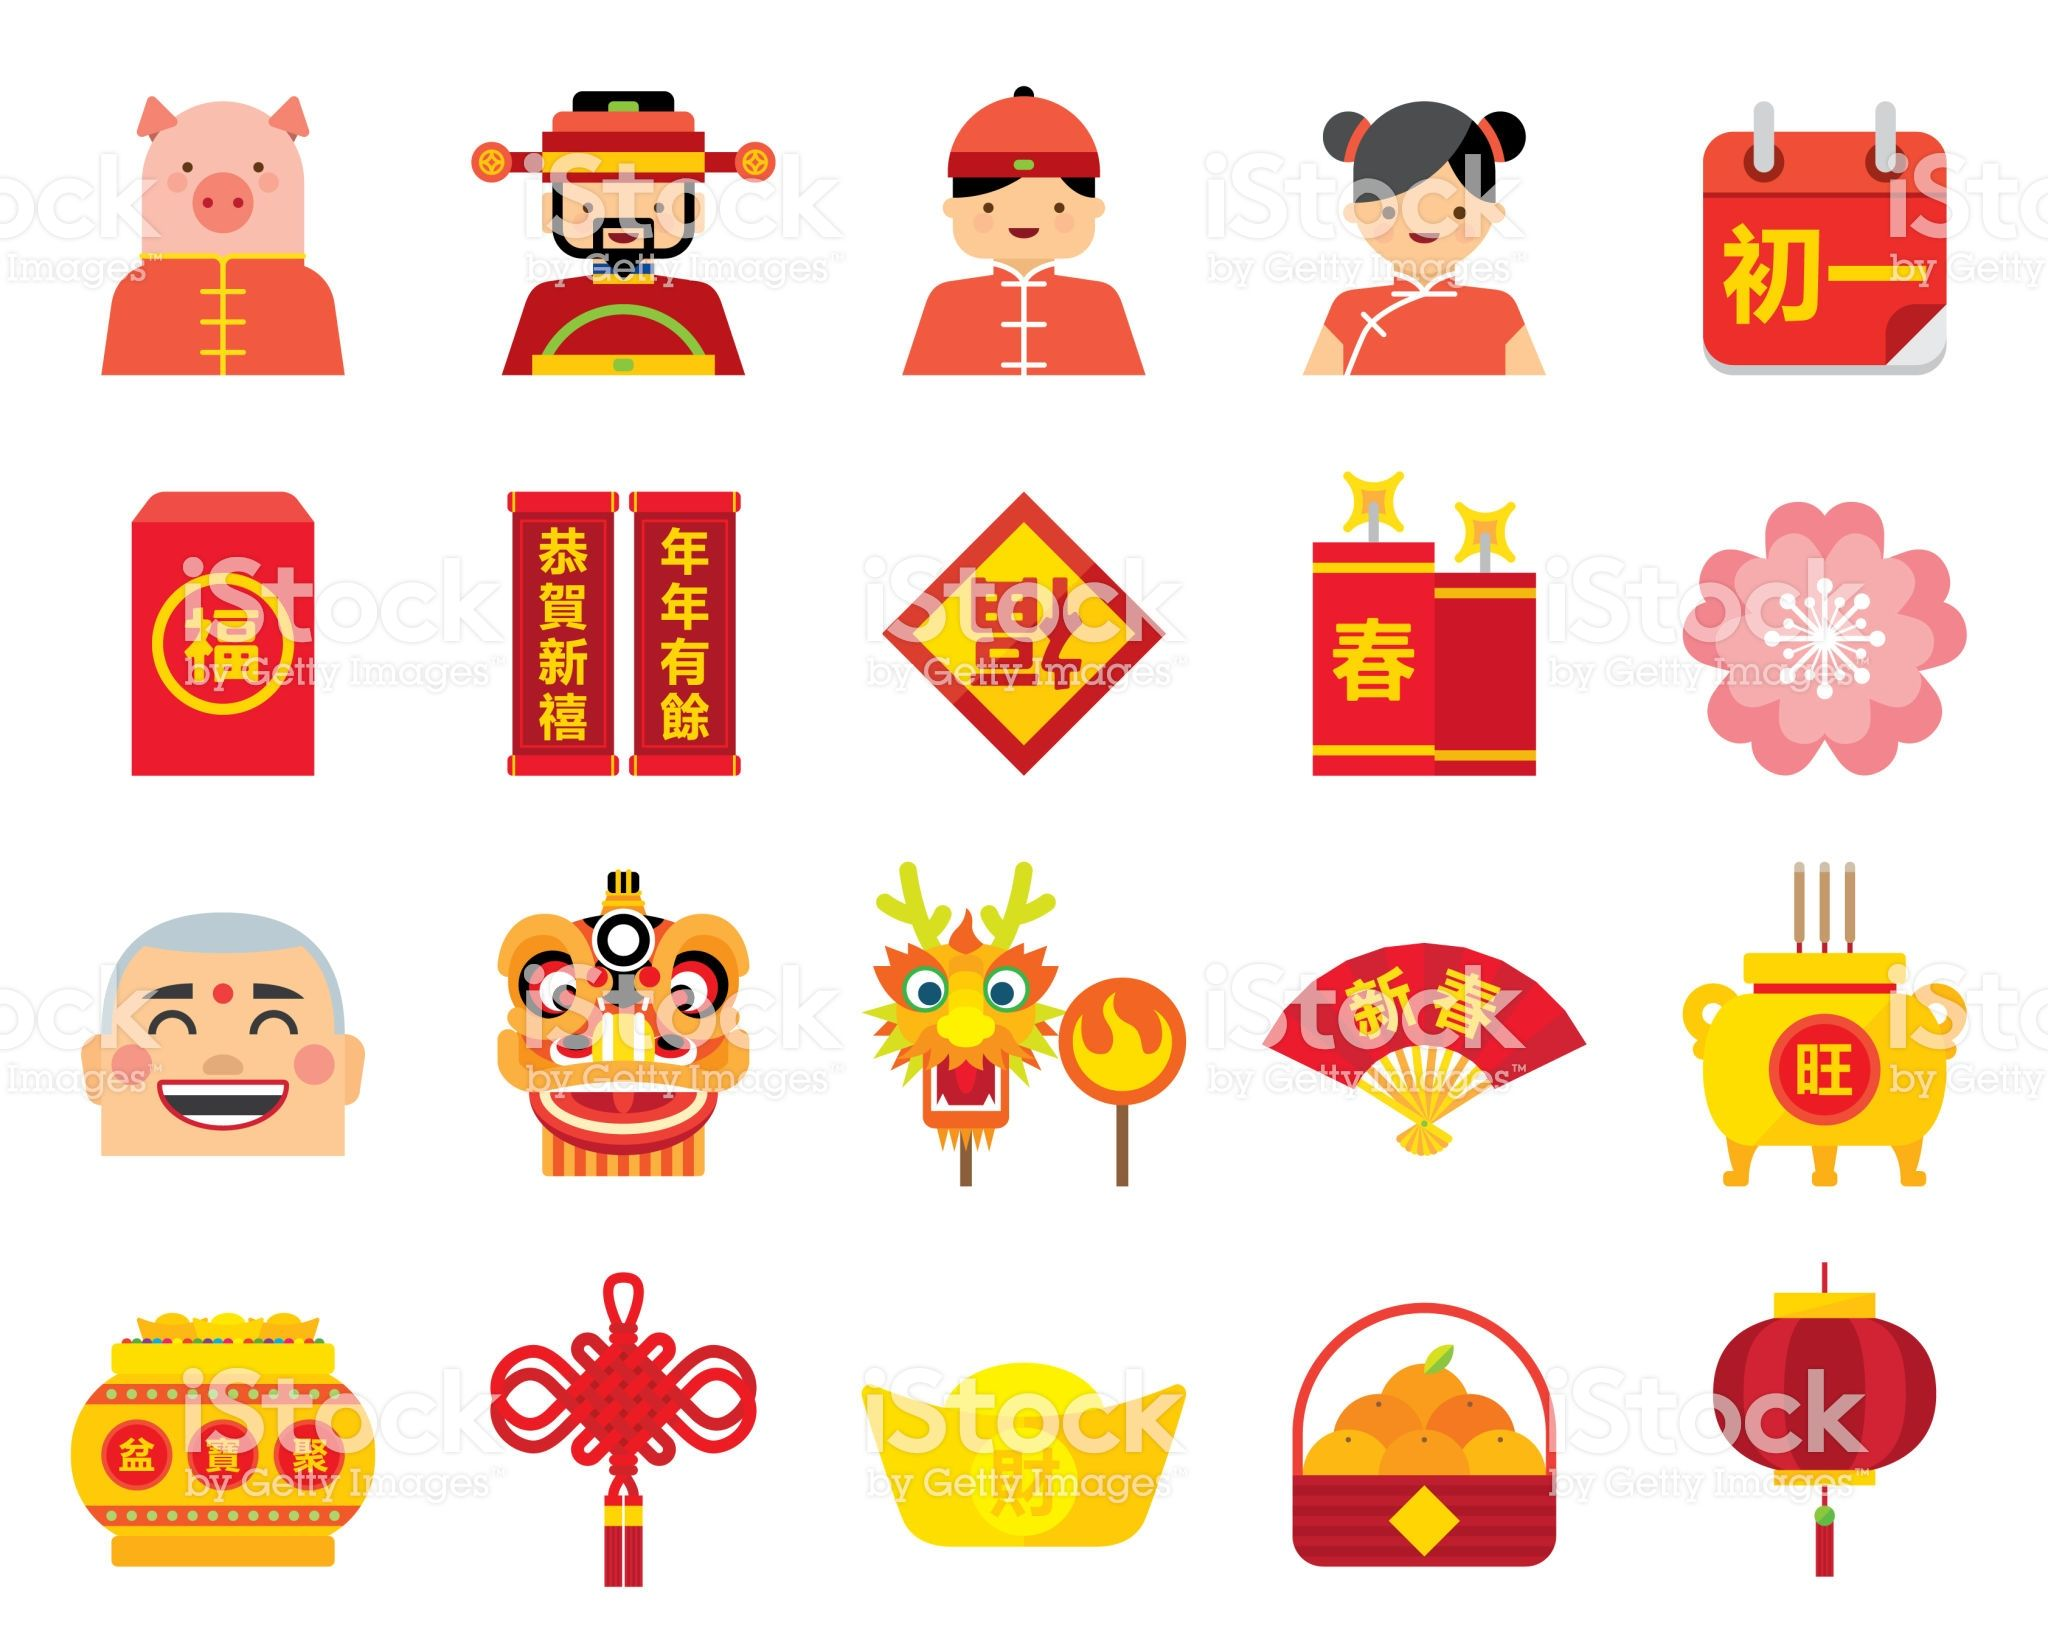 Flat Chinese New Year icon and avatar set for the year of the pig